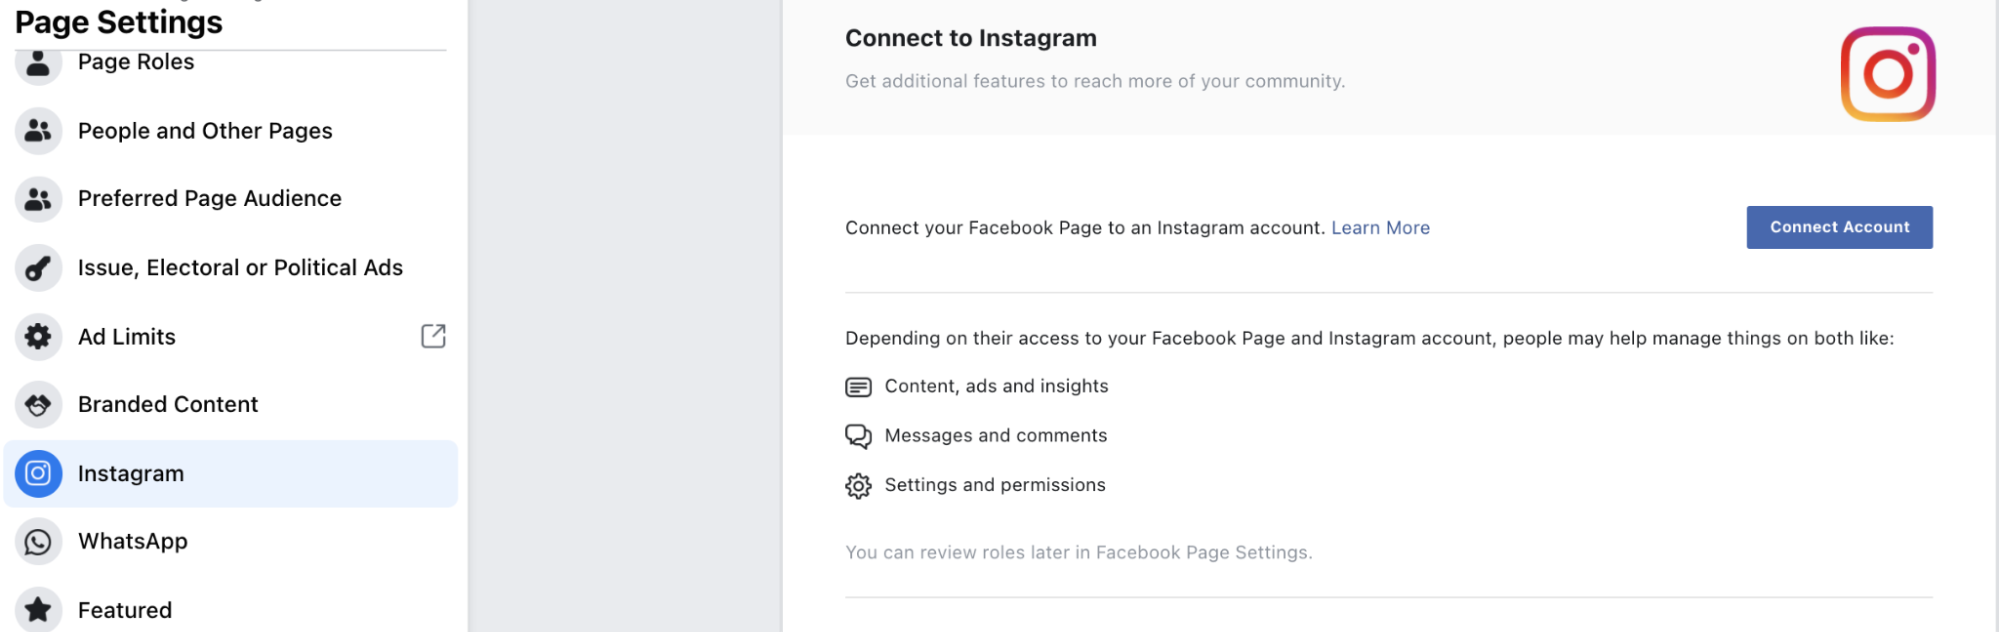 setting up an Instagram ad from Ads Manager